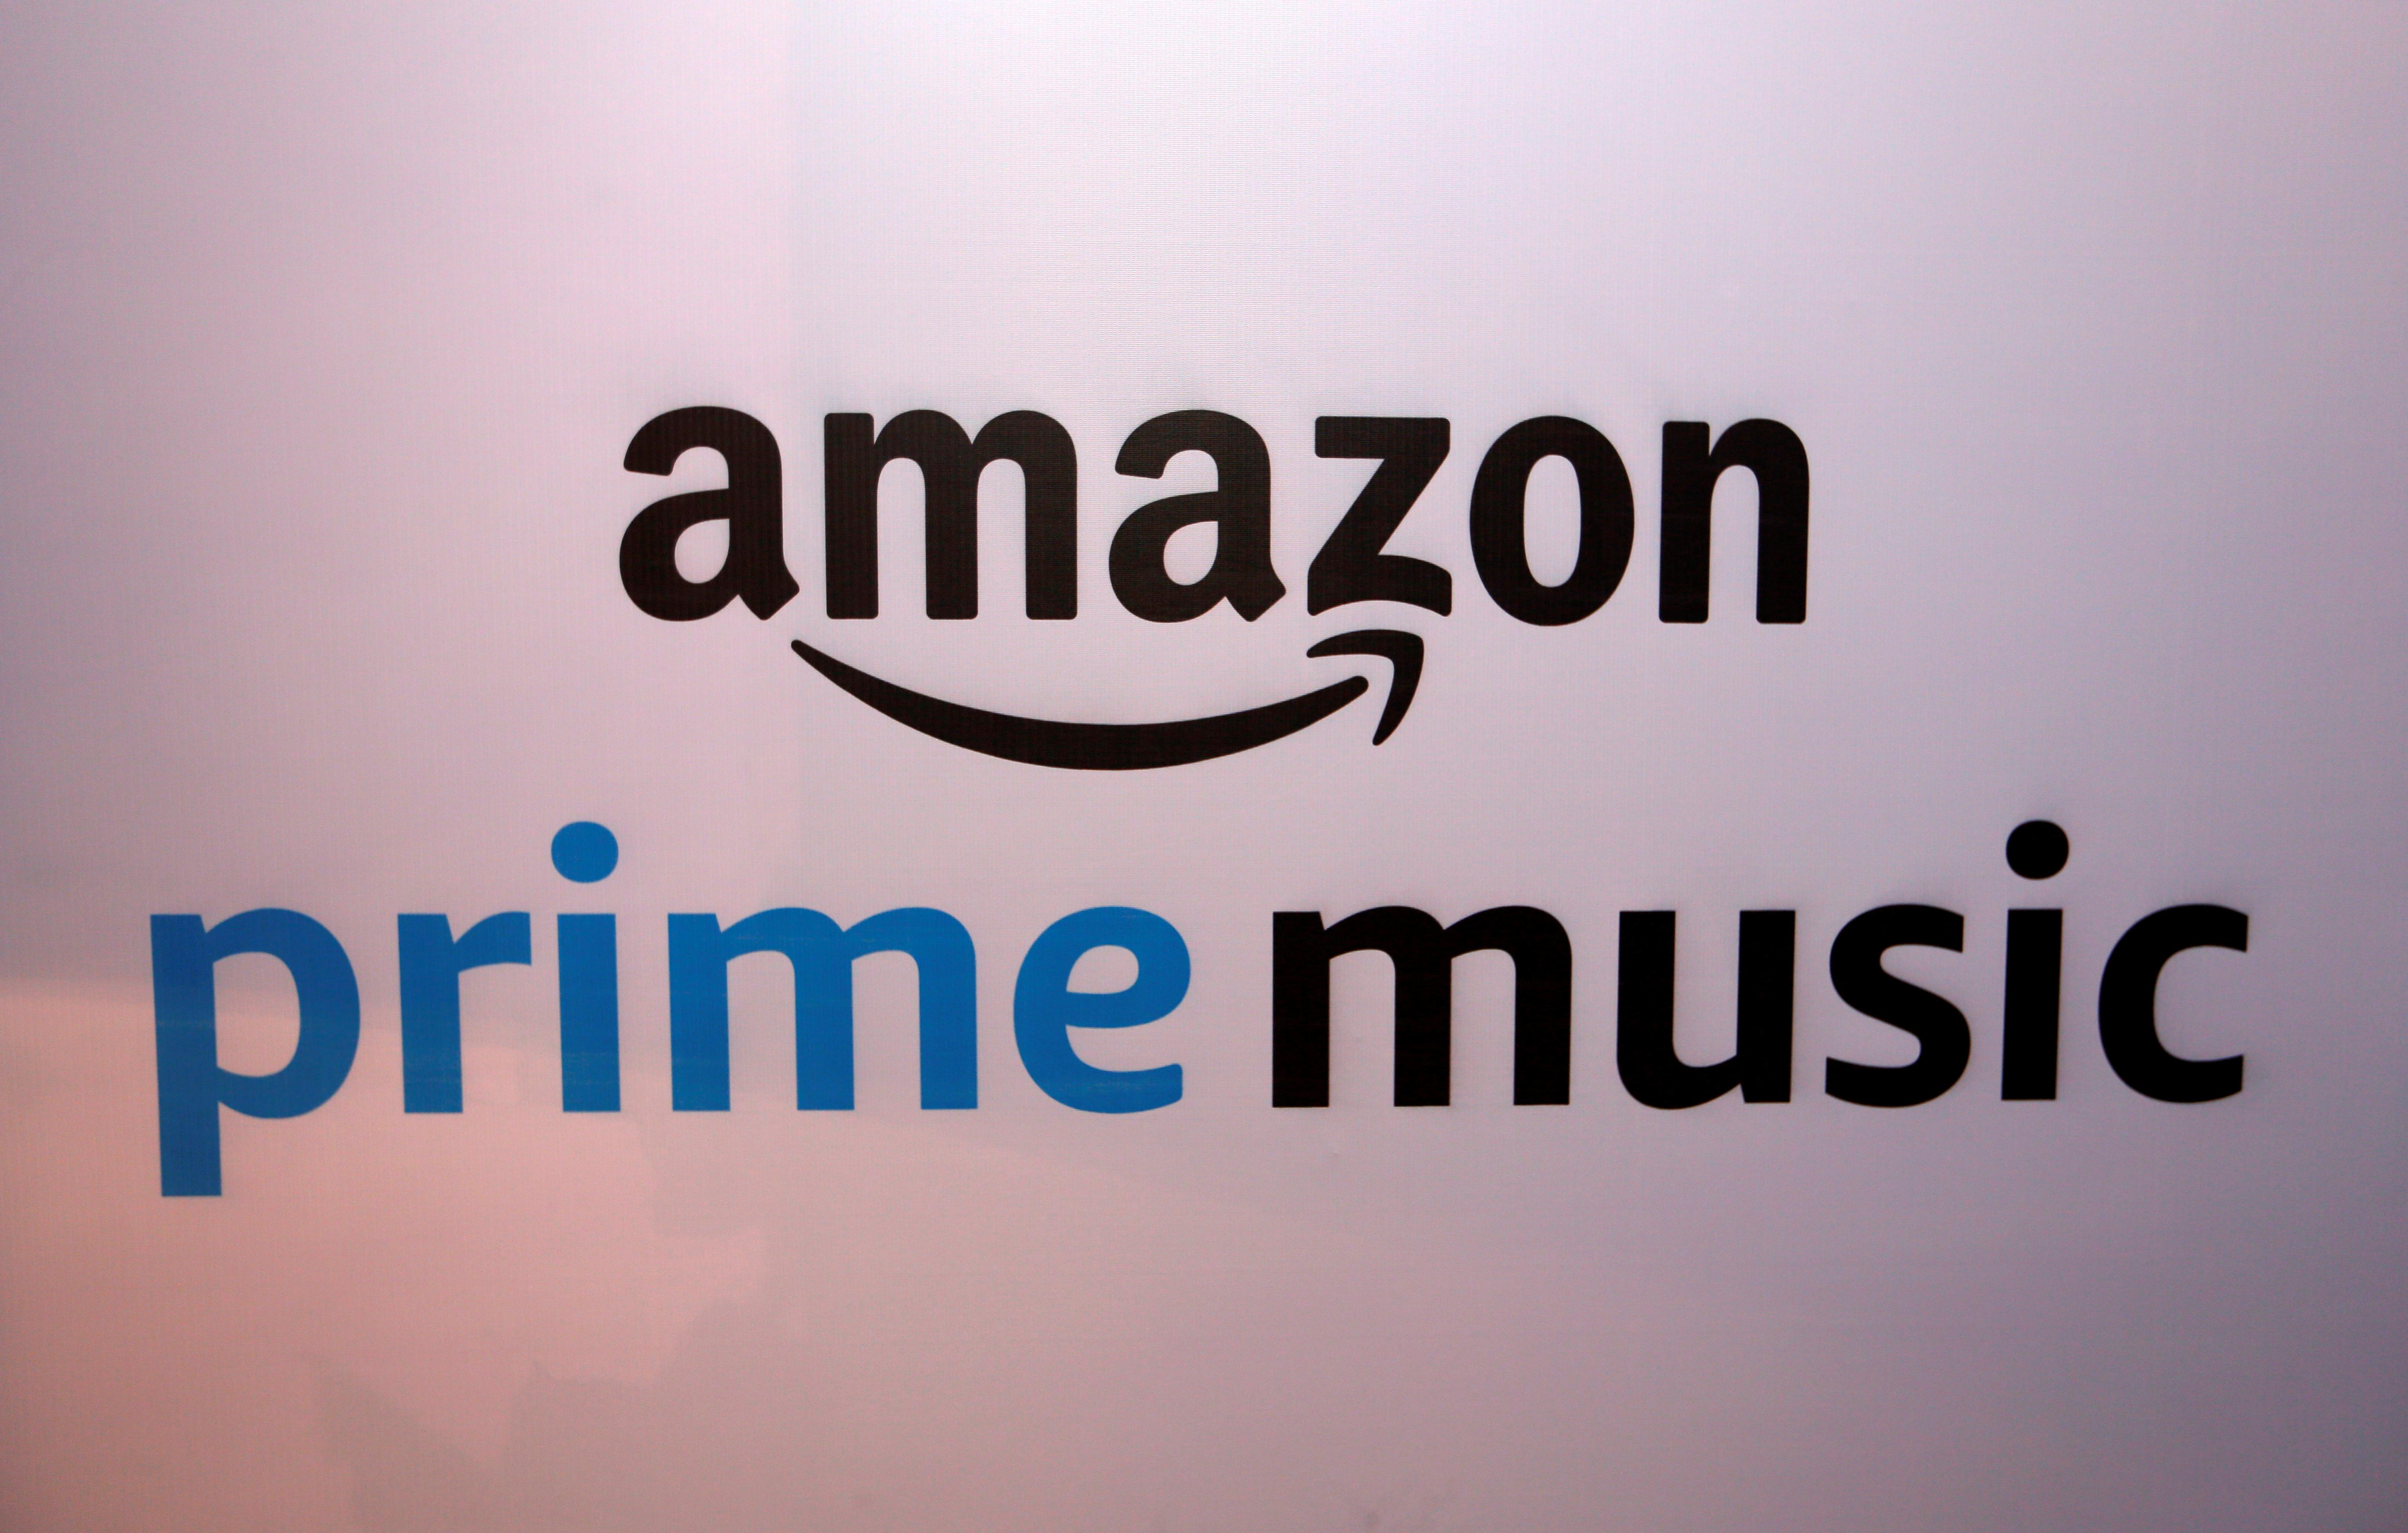 Amazon offers ad-supported free music streaming service